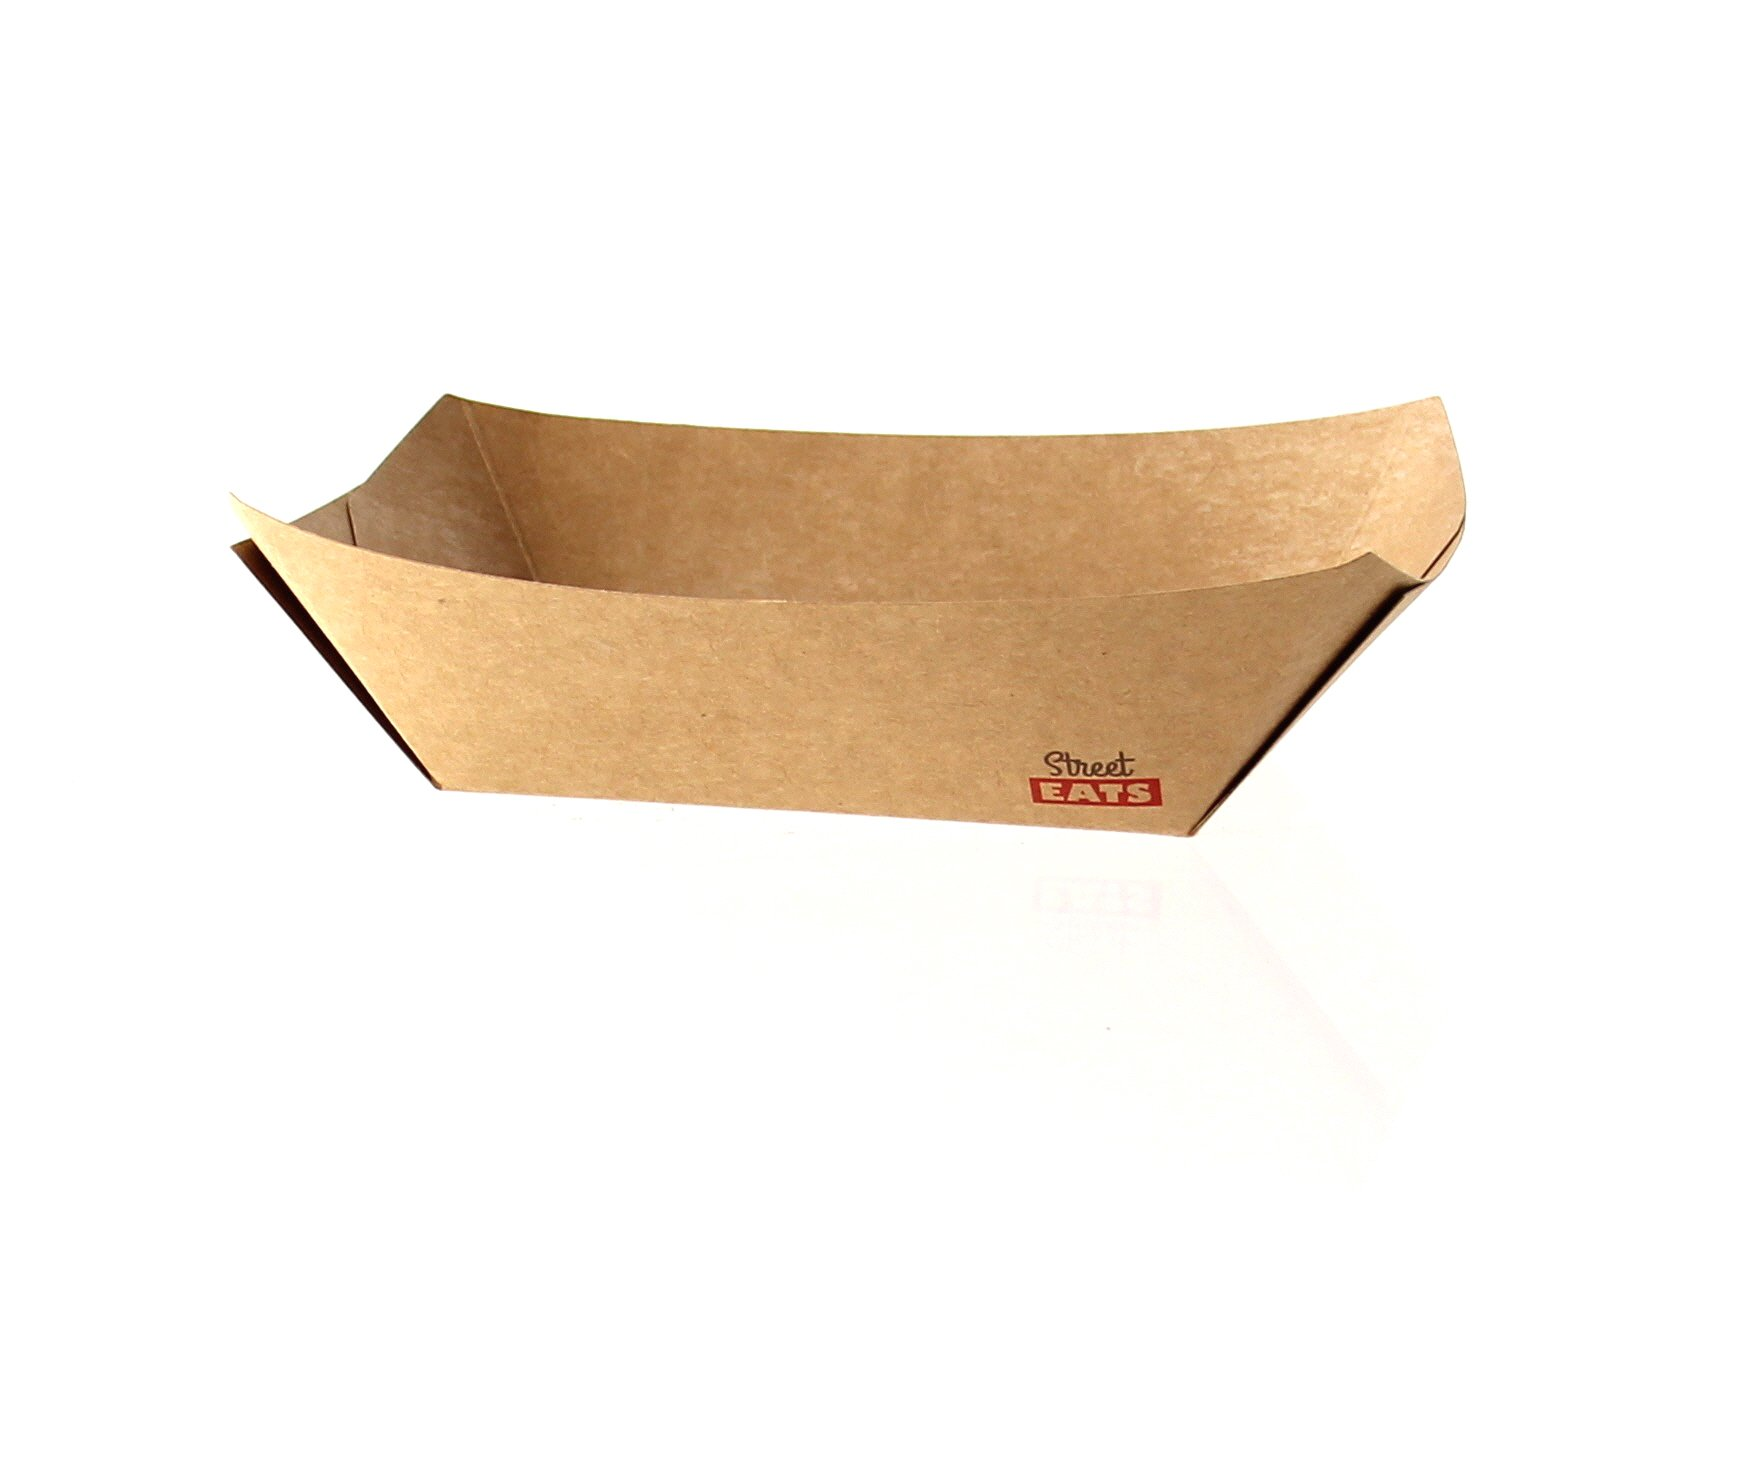 Kraft Brown Paper Food Tray Boat (Case of 1000), PacknWood - Party Supplies Snack Trays (10 oz, 6.3'' x 4.4'' x 1.6'') 210BQKEAT3